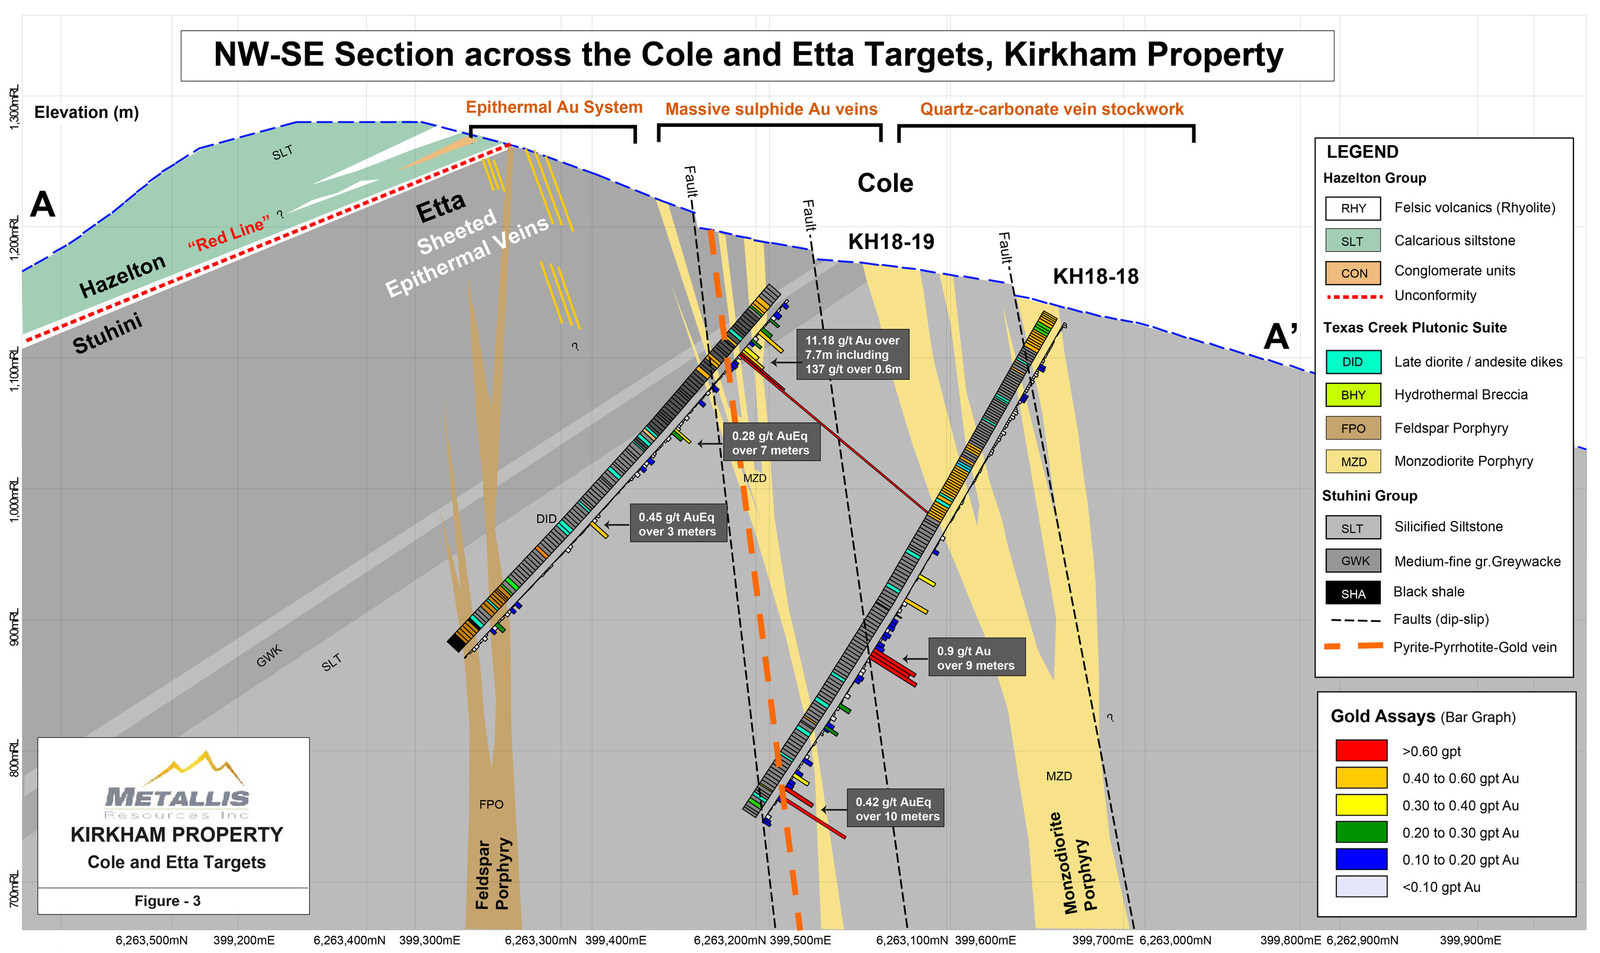 Metallis Resources Inc - Figure 3 - NW-SE Section Map across Cole and Etta Targets at the Kirkham Property